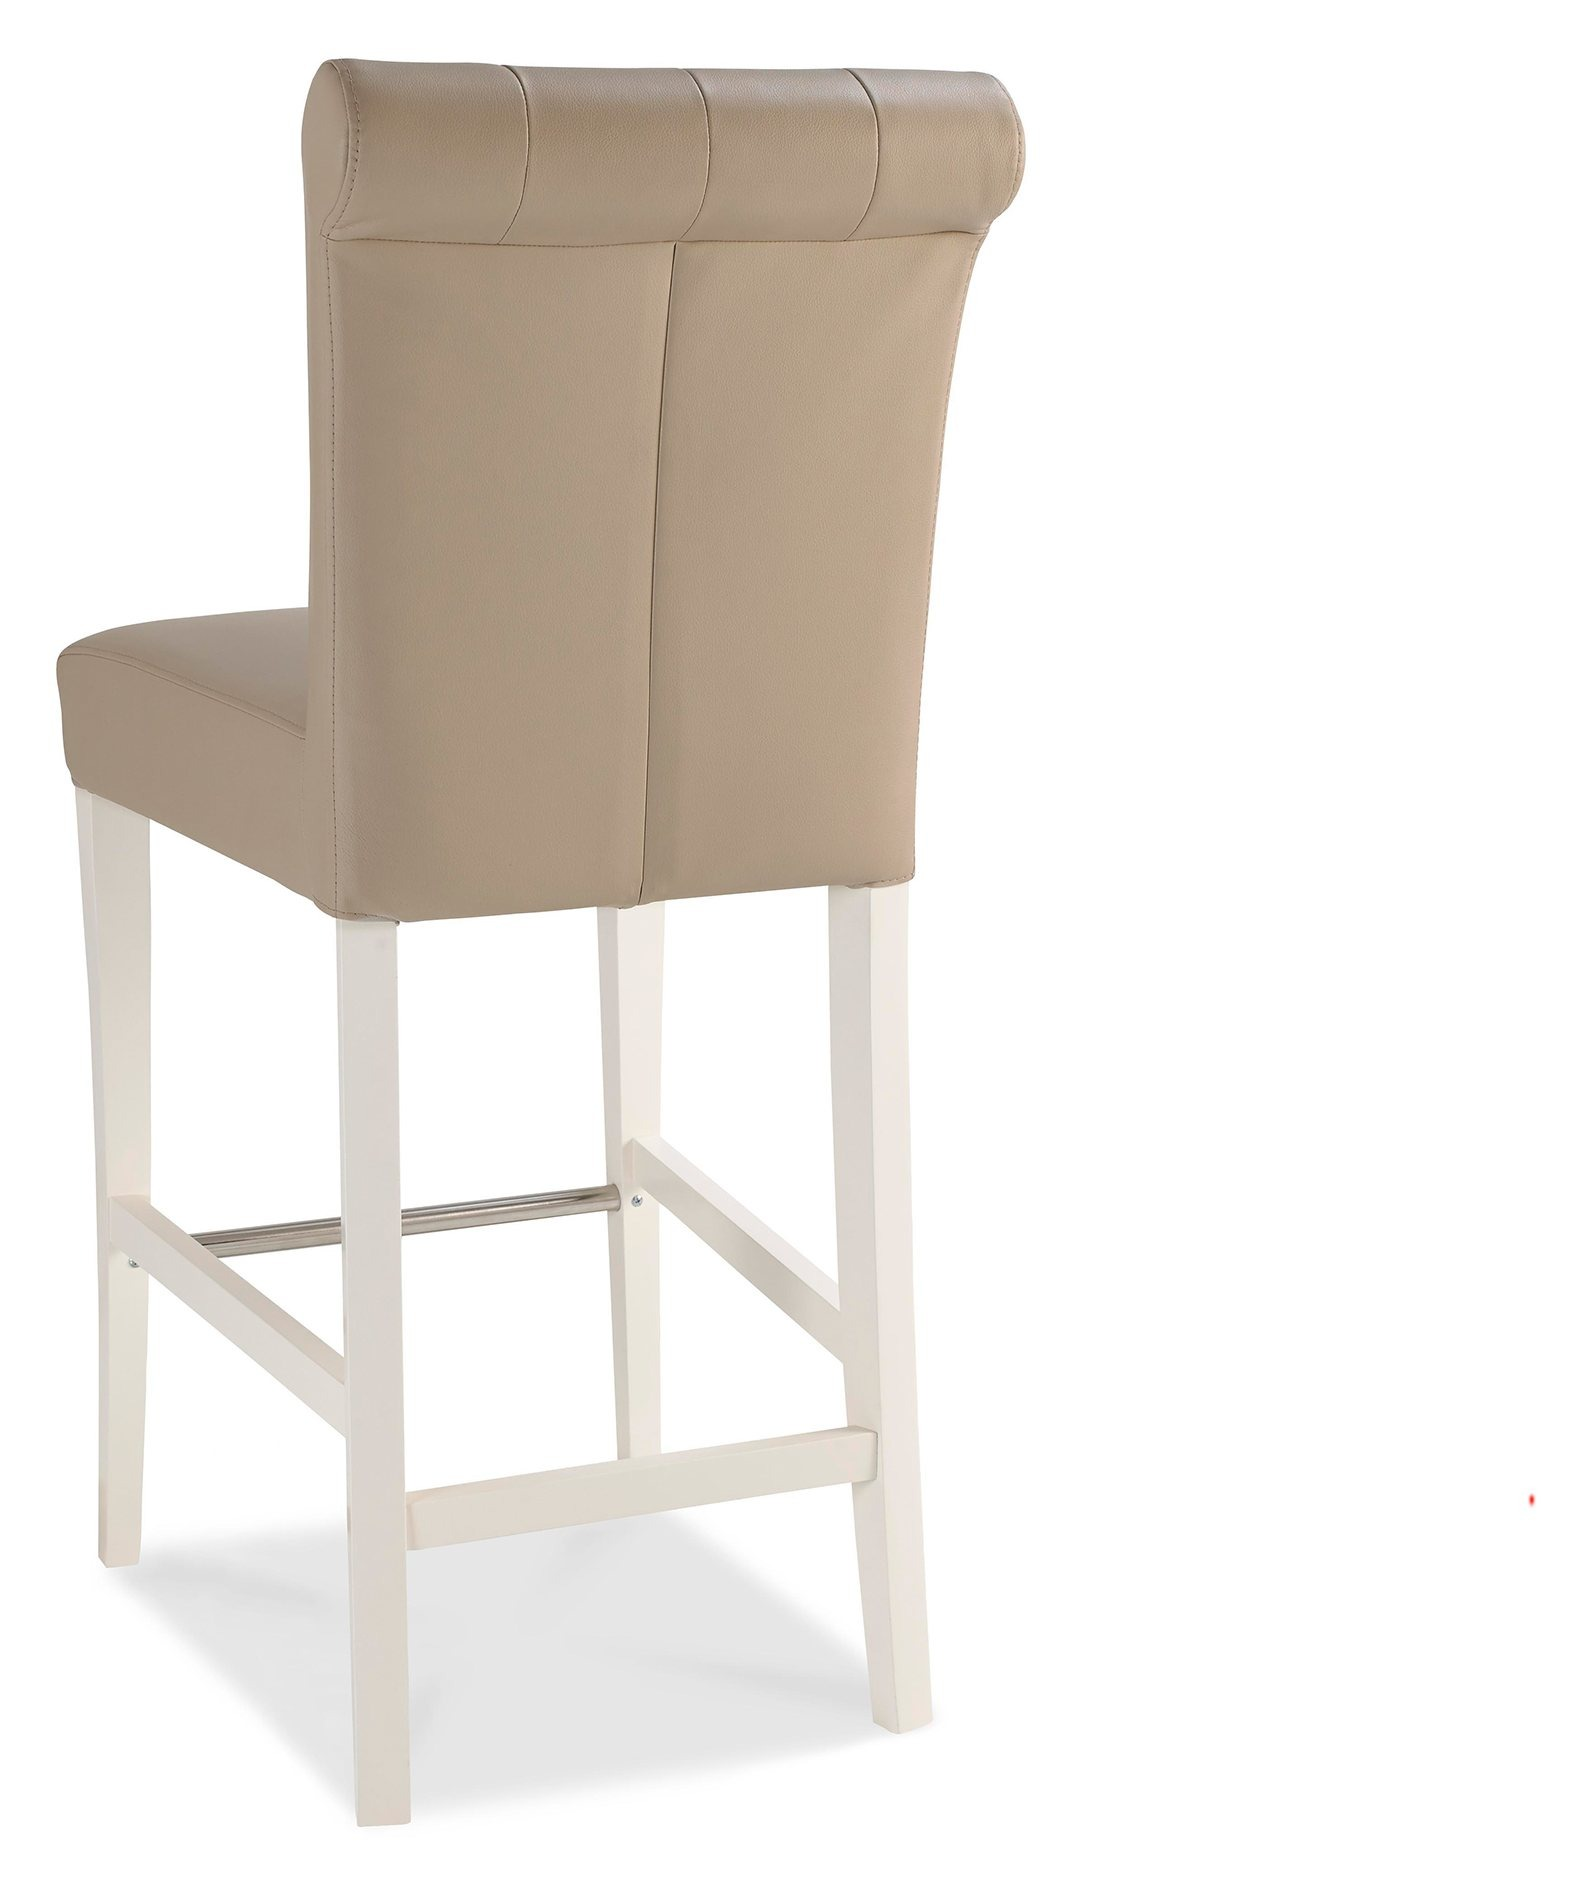 KYRA BAR STOOL - BACK DETAIL